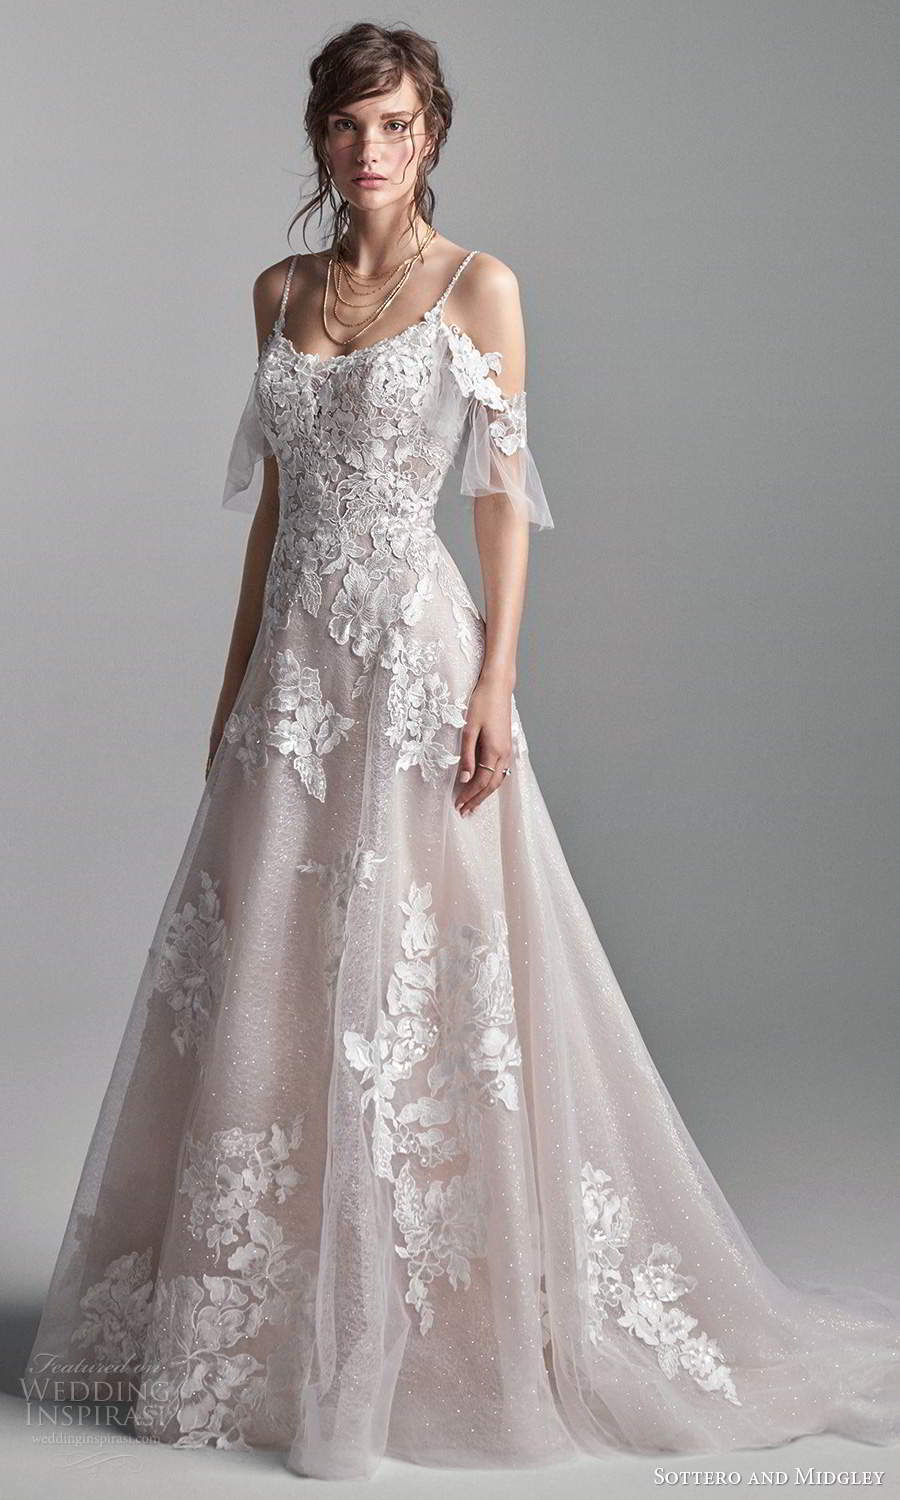 sottero midgley fall 2020 bridal cold shoulder scoop necklne embellished a line ball gown wedding dress chapel train blush (17) mv